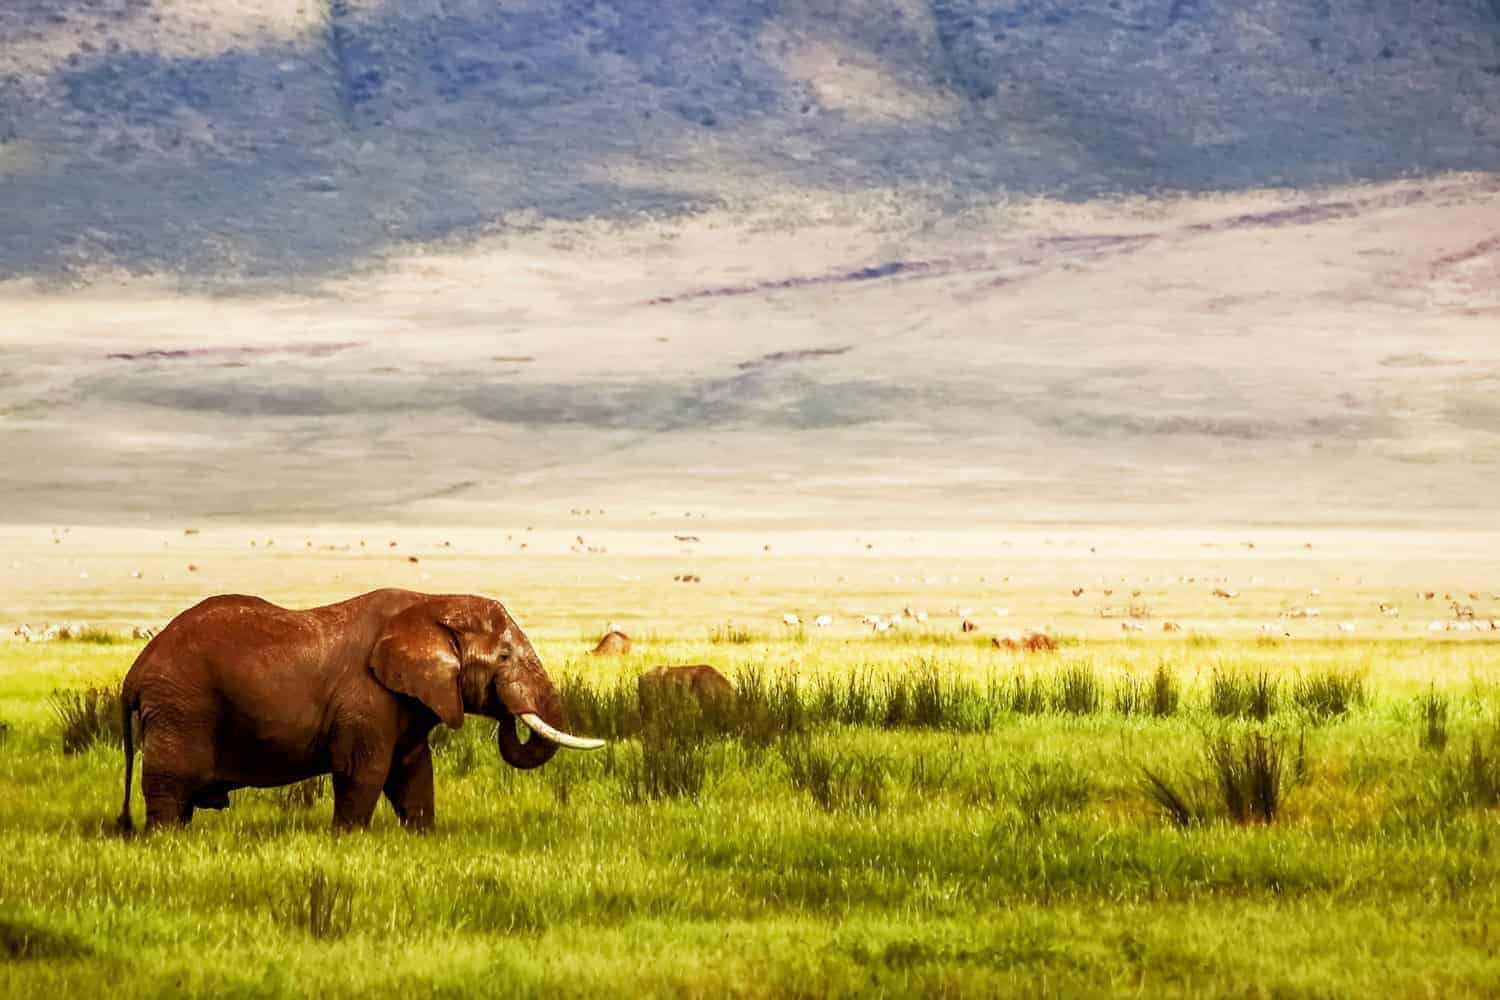 Safari travel to the Ngorongoro crater in Tanzania. See the big five